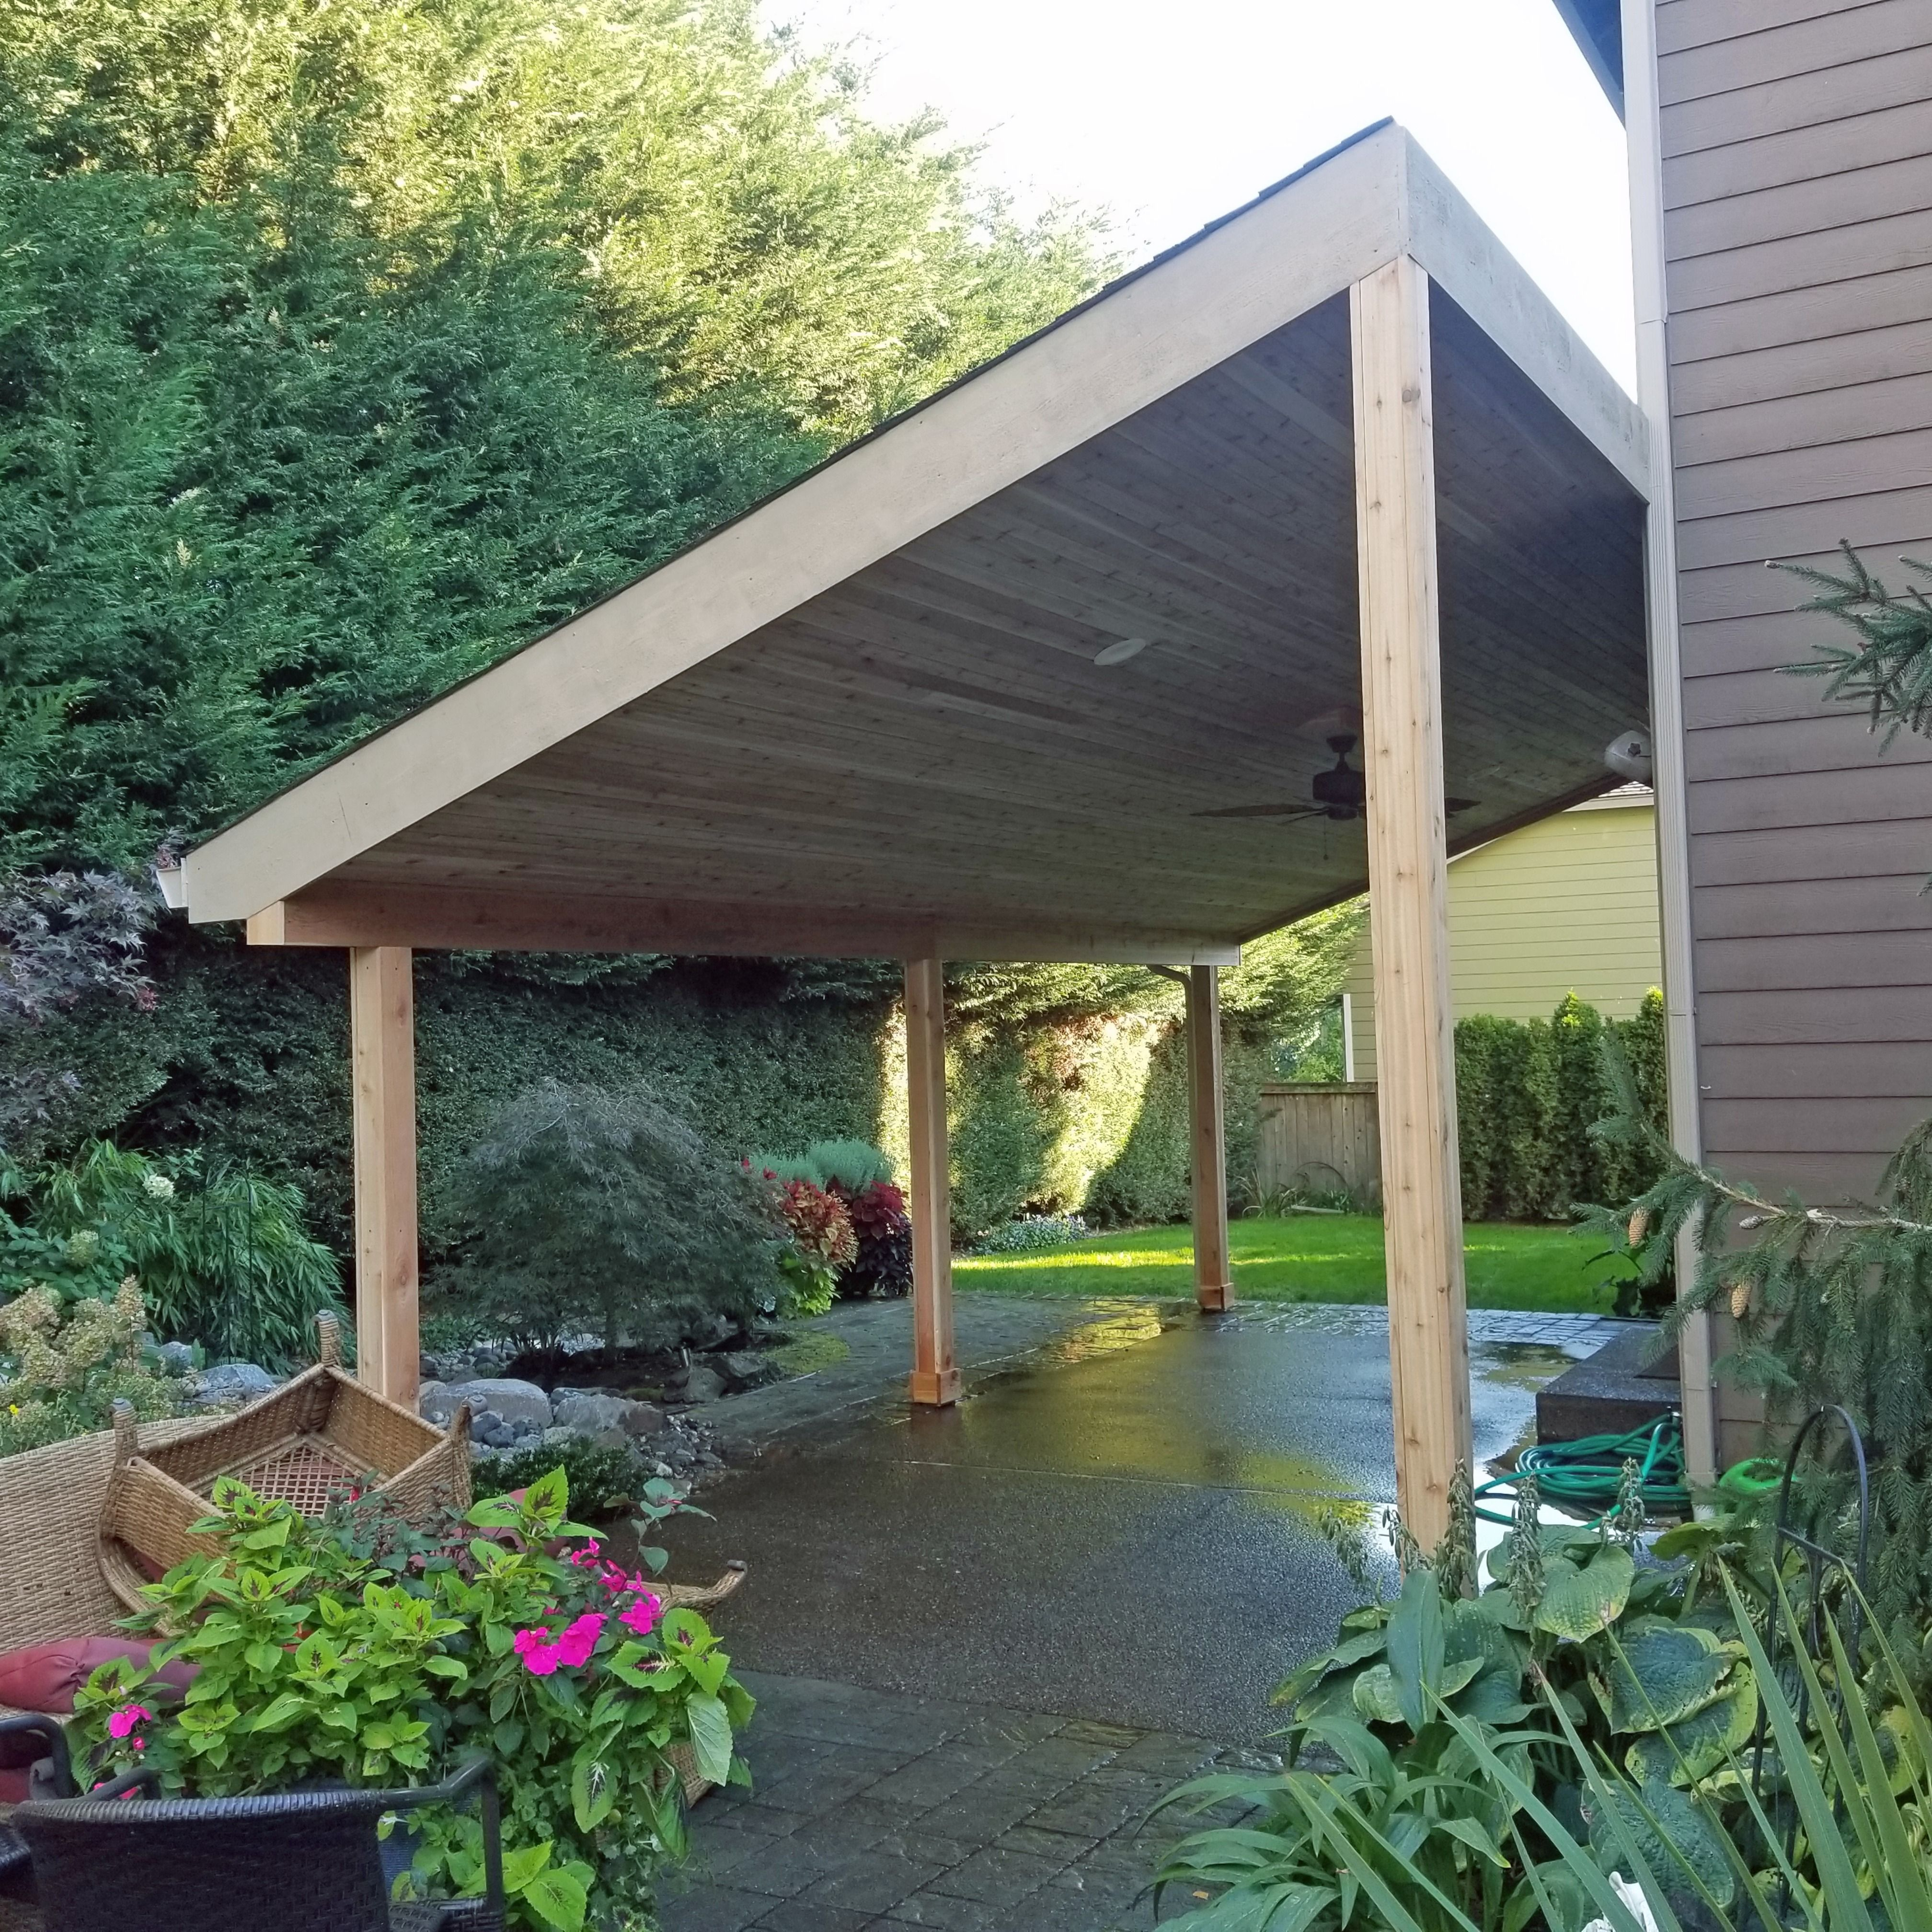 This Patio Cover Was Built To Include Ceiling Fans And Outdoor